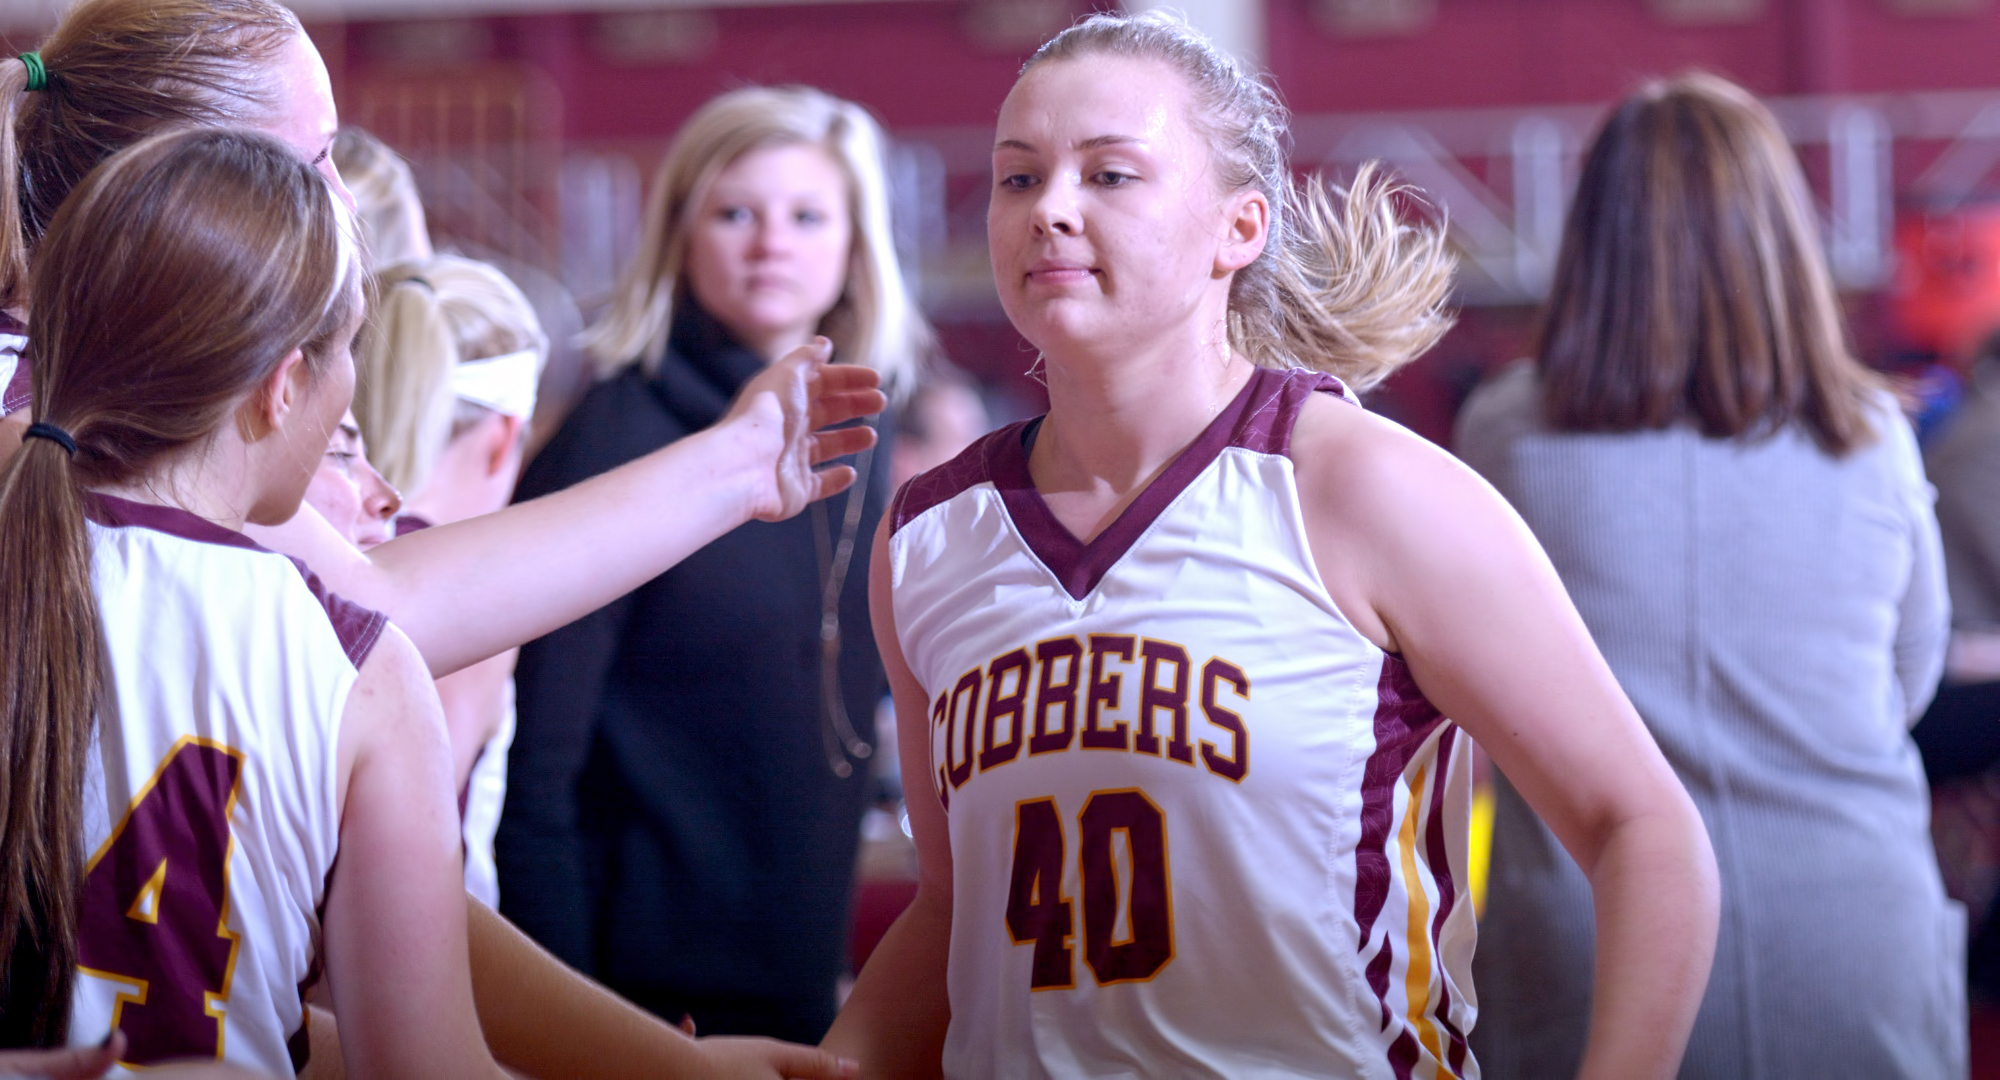 Sophomore Mira Ellefson scored a career-high 17 points in the Cobbers' non-conference game at Wis.-River Falls.